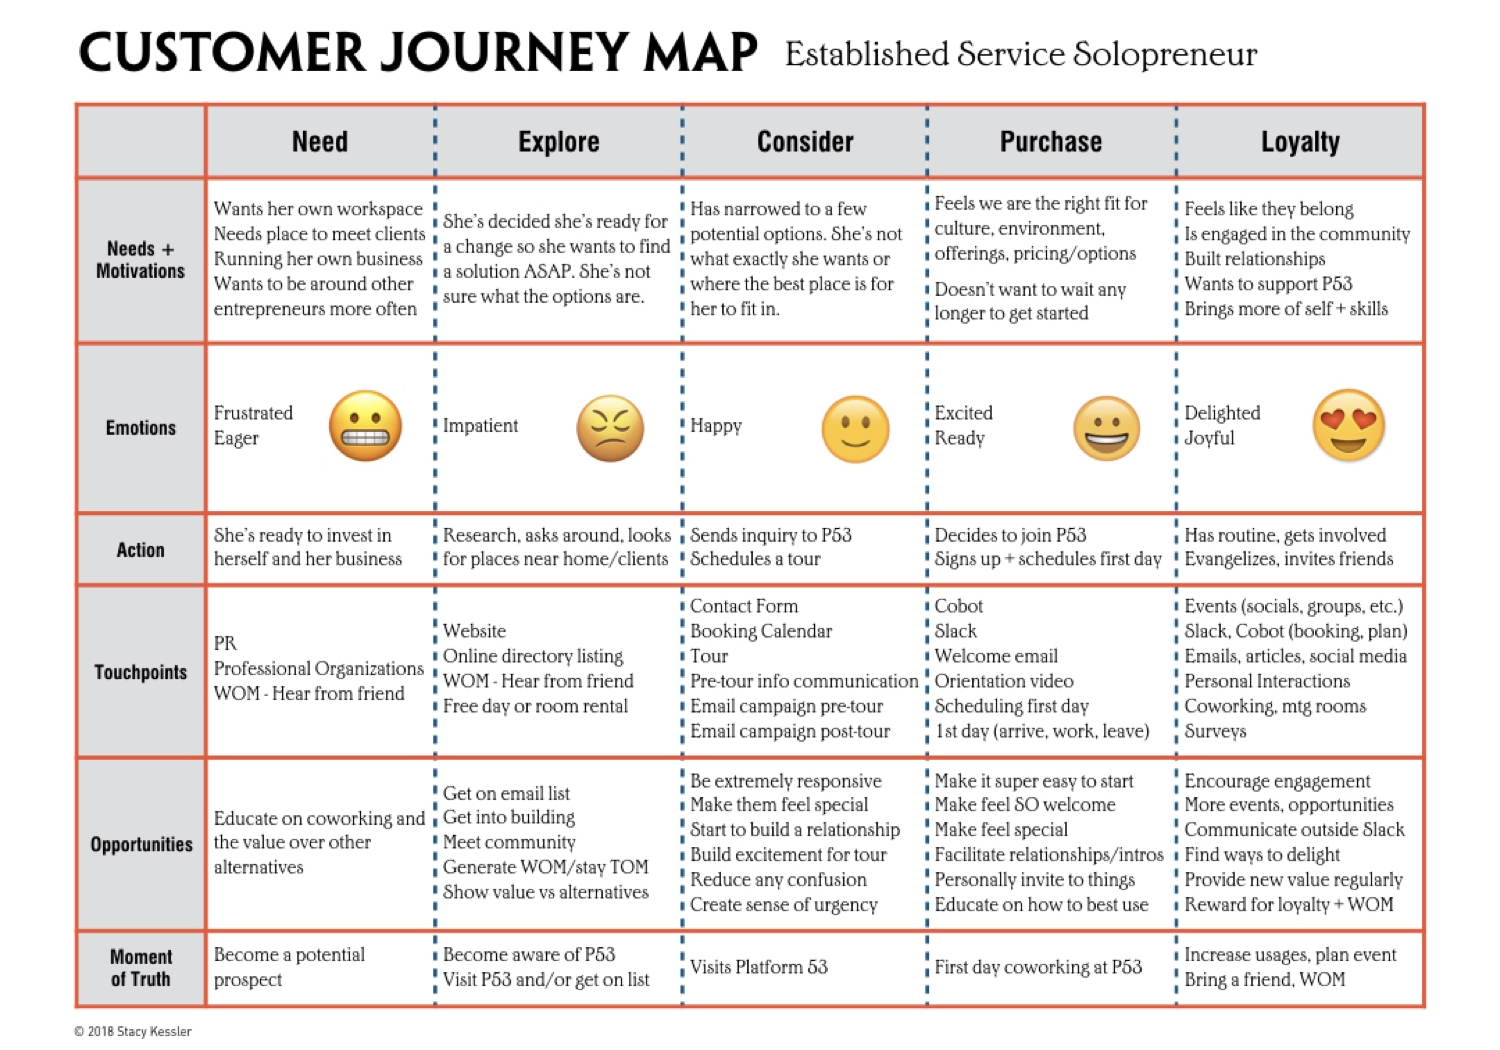 Customer Journey Examples - stacy kessler.006.jpeg